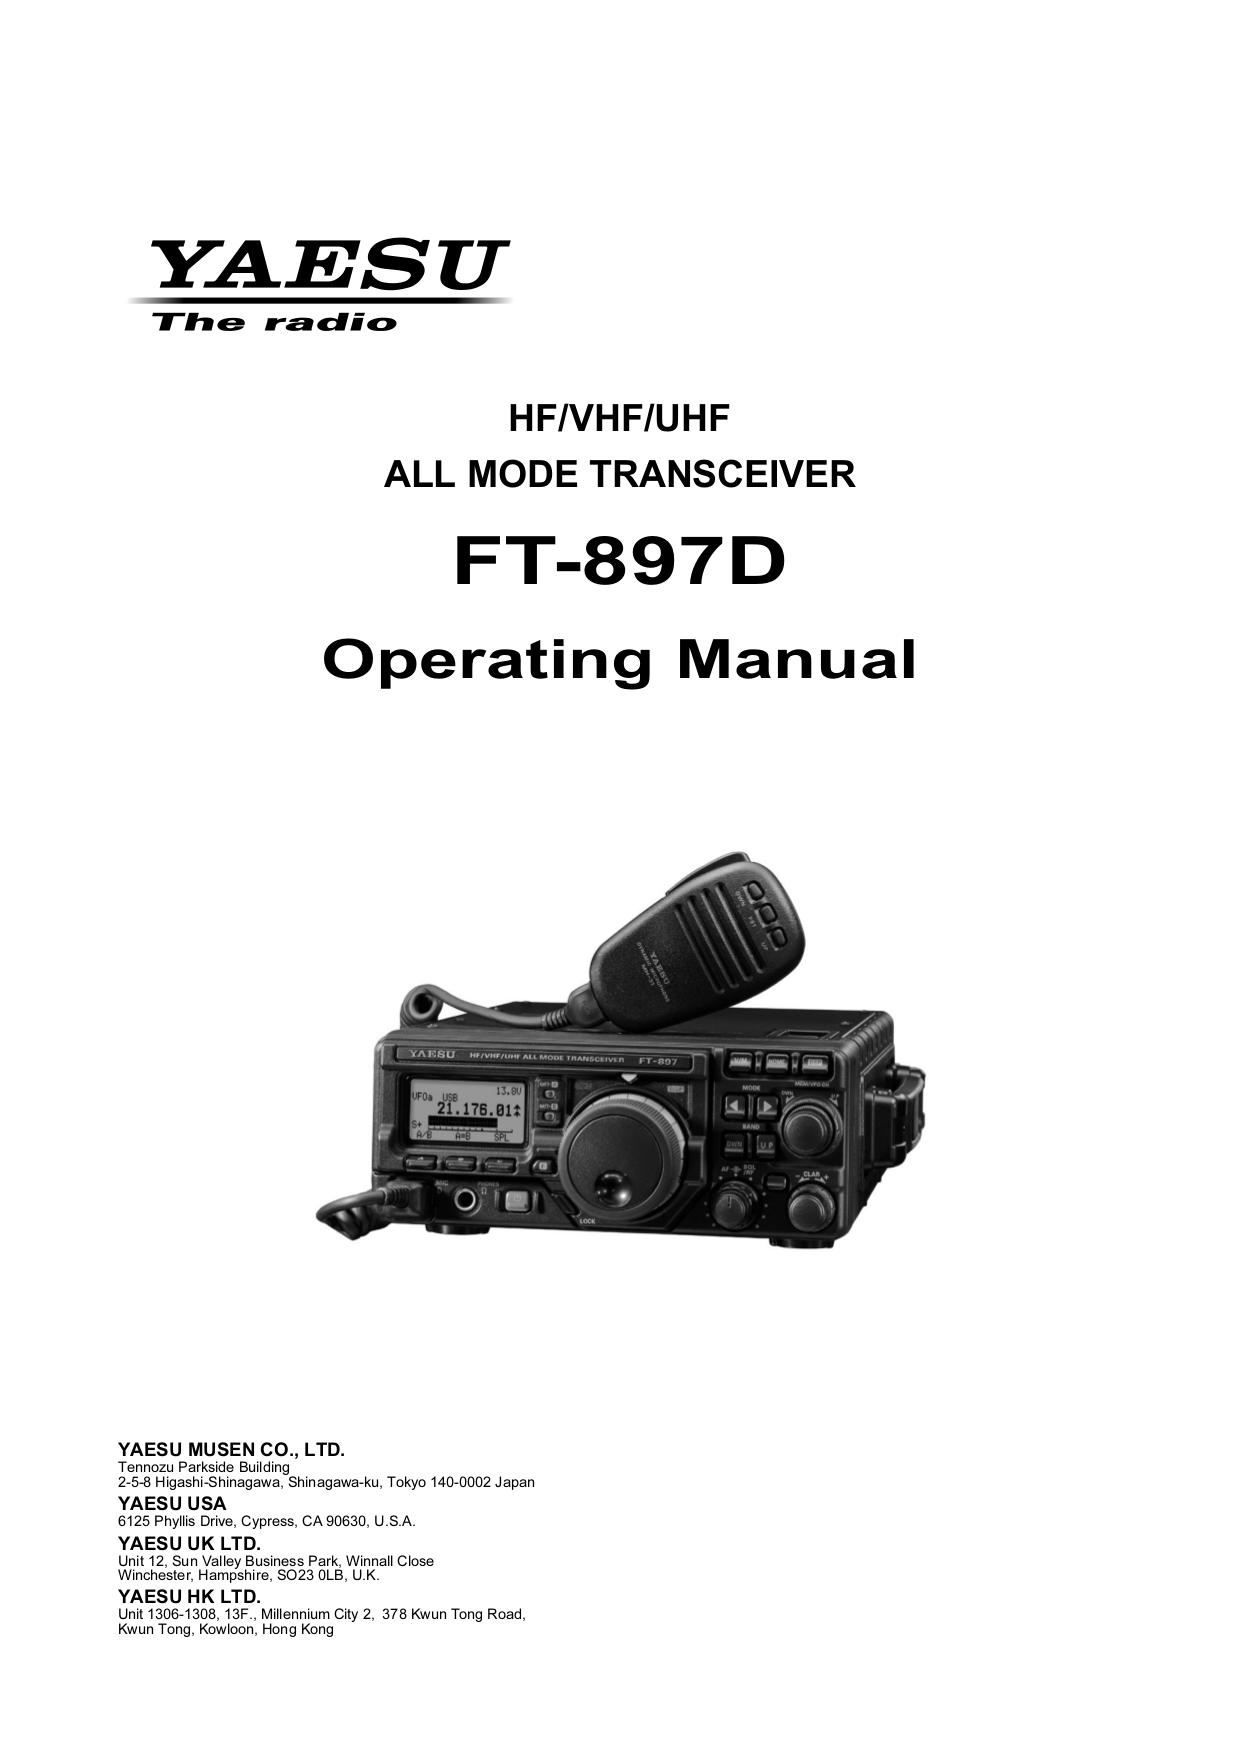 Download free pdf for Yaesu FT-897D HF Transceiver Other